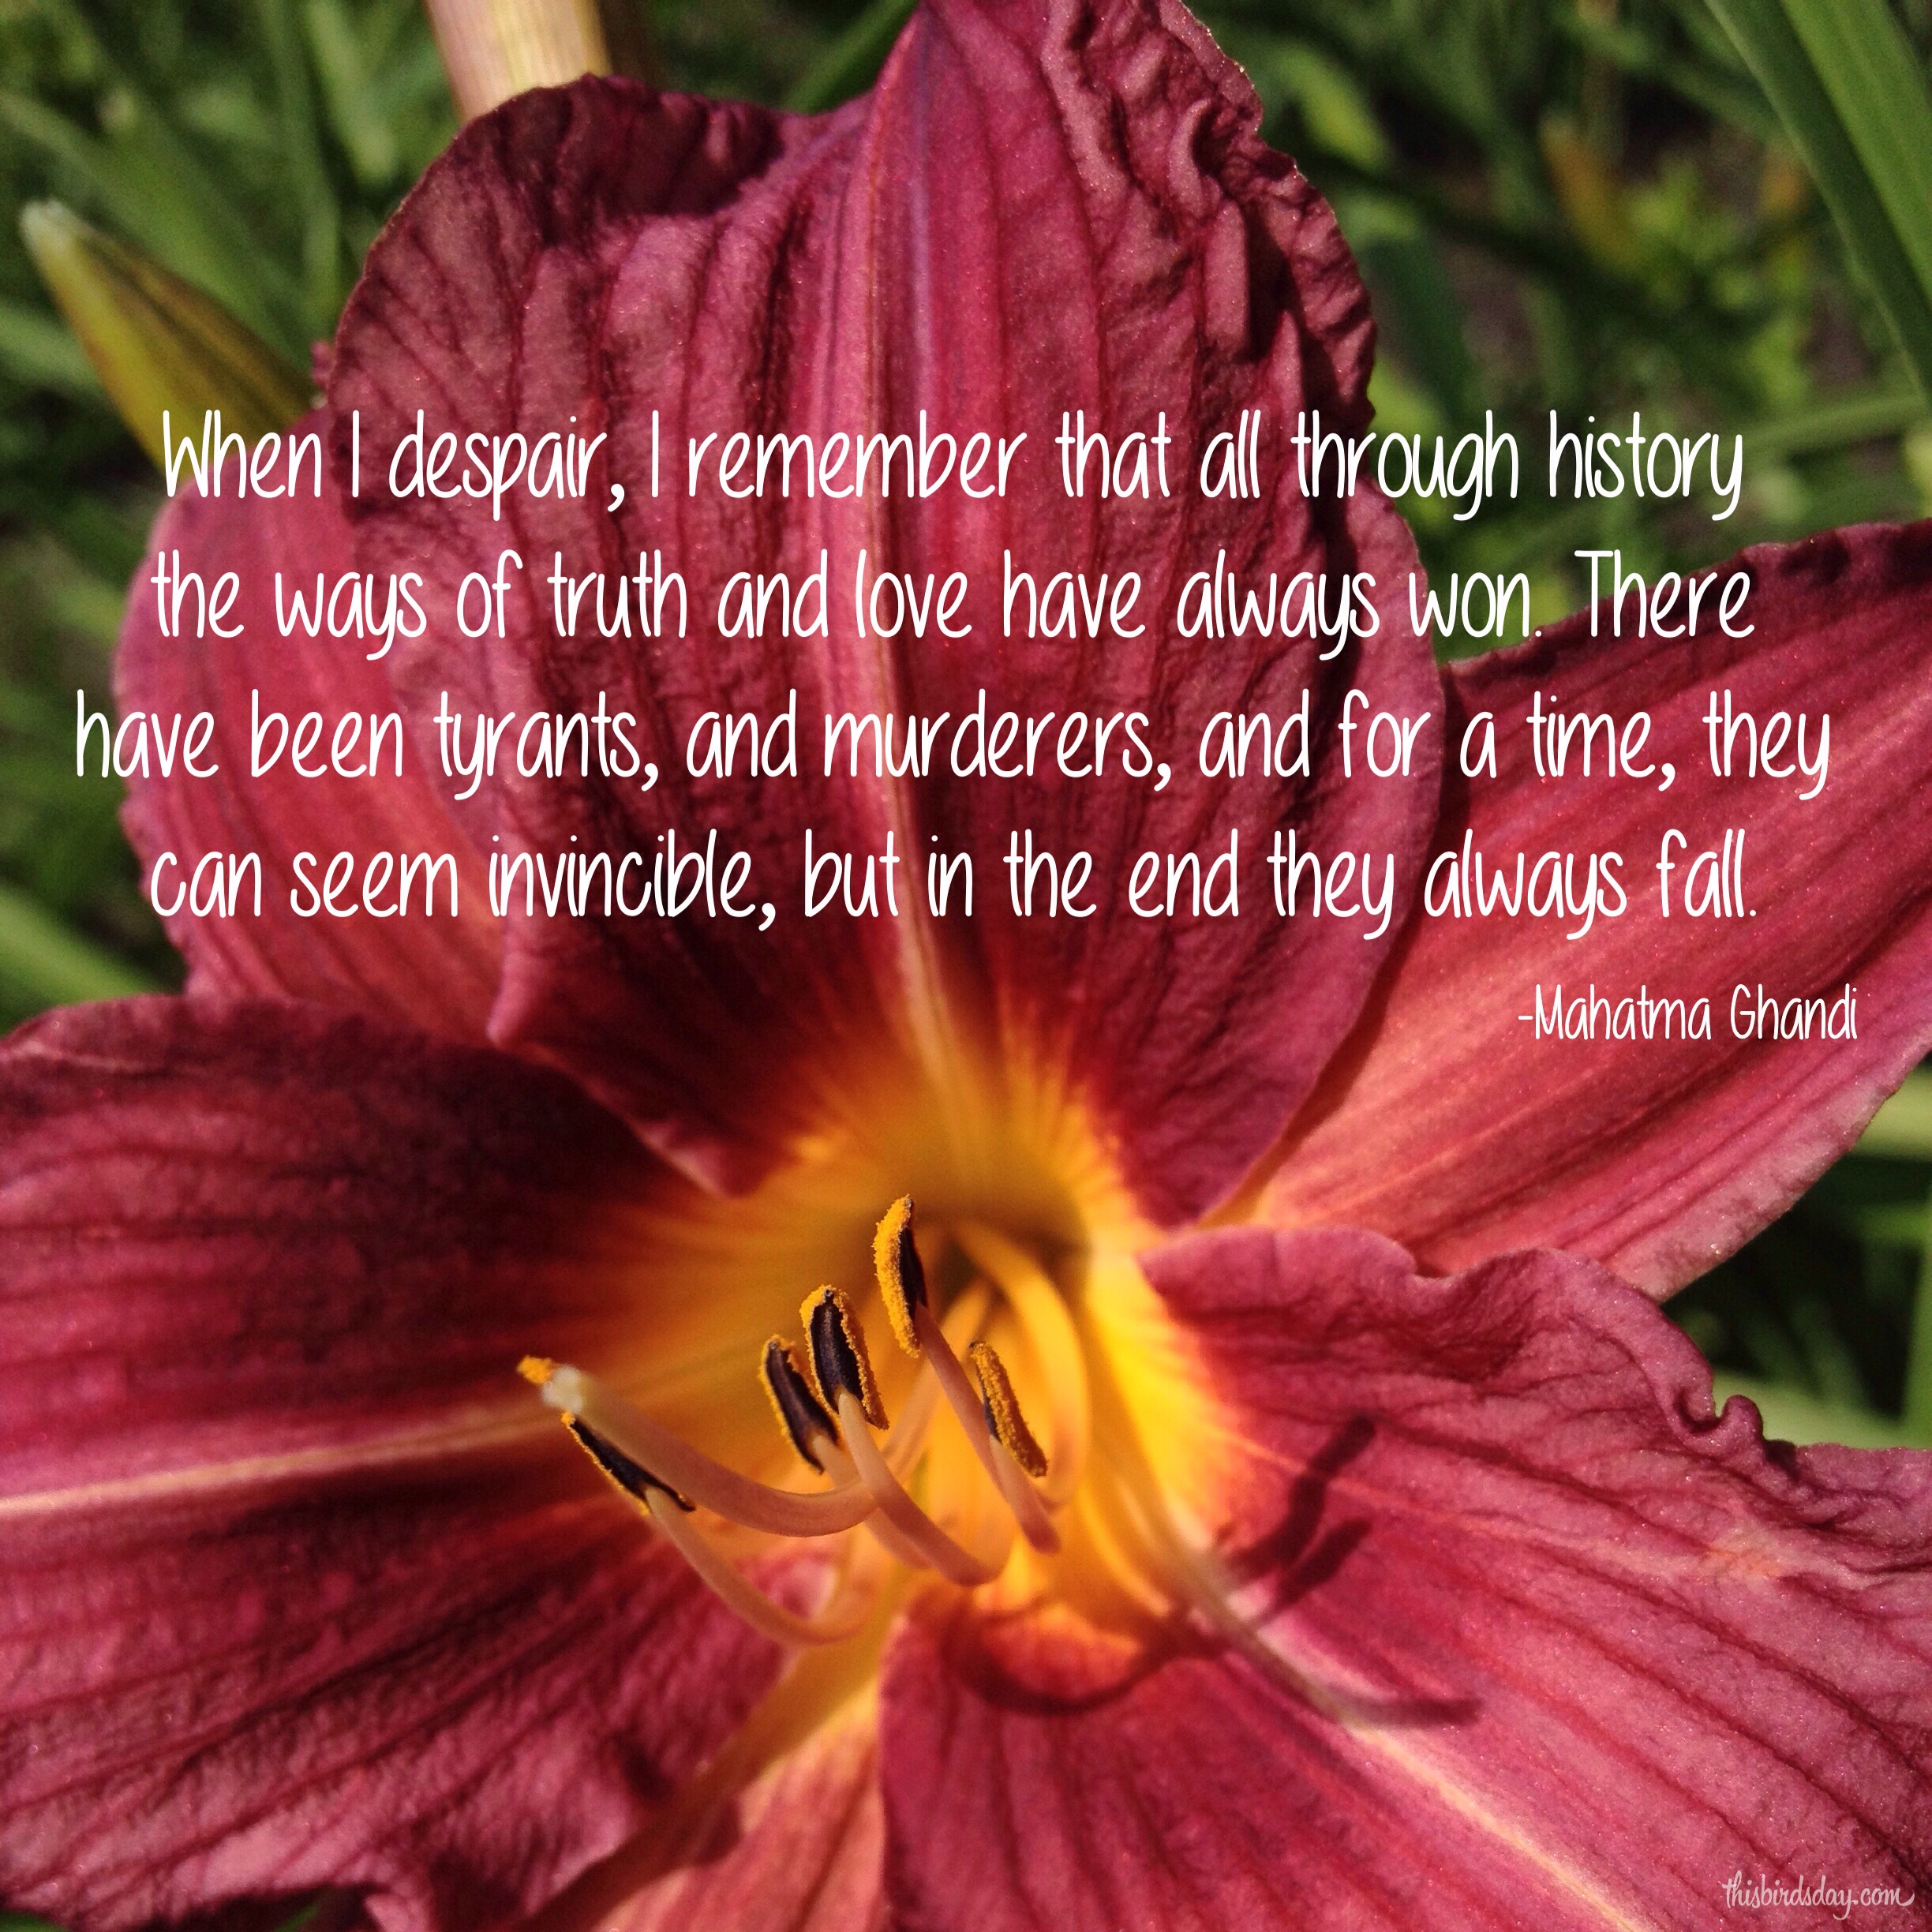 """""""When I despair, I remember that all through history the ways of truth and love have always won. There have been tyrants, and murderers, and for a time they can seem invincible, but in the end they always fall."""" Mahatma Ghandi. Photo copyright Sheri Landry"""